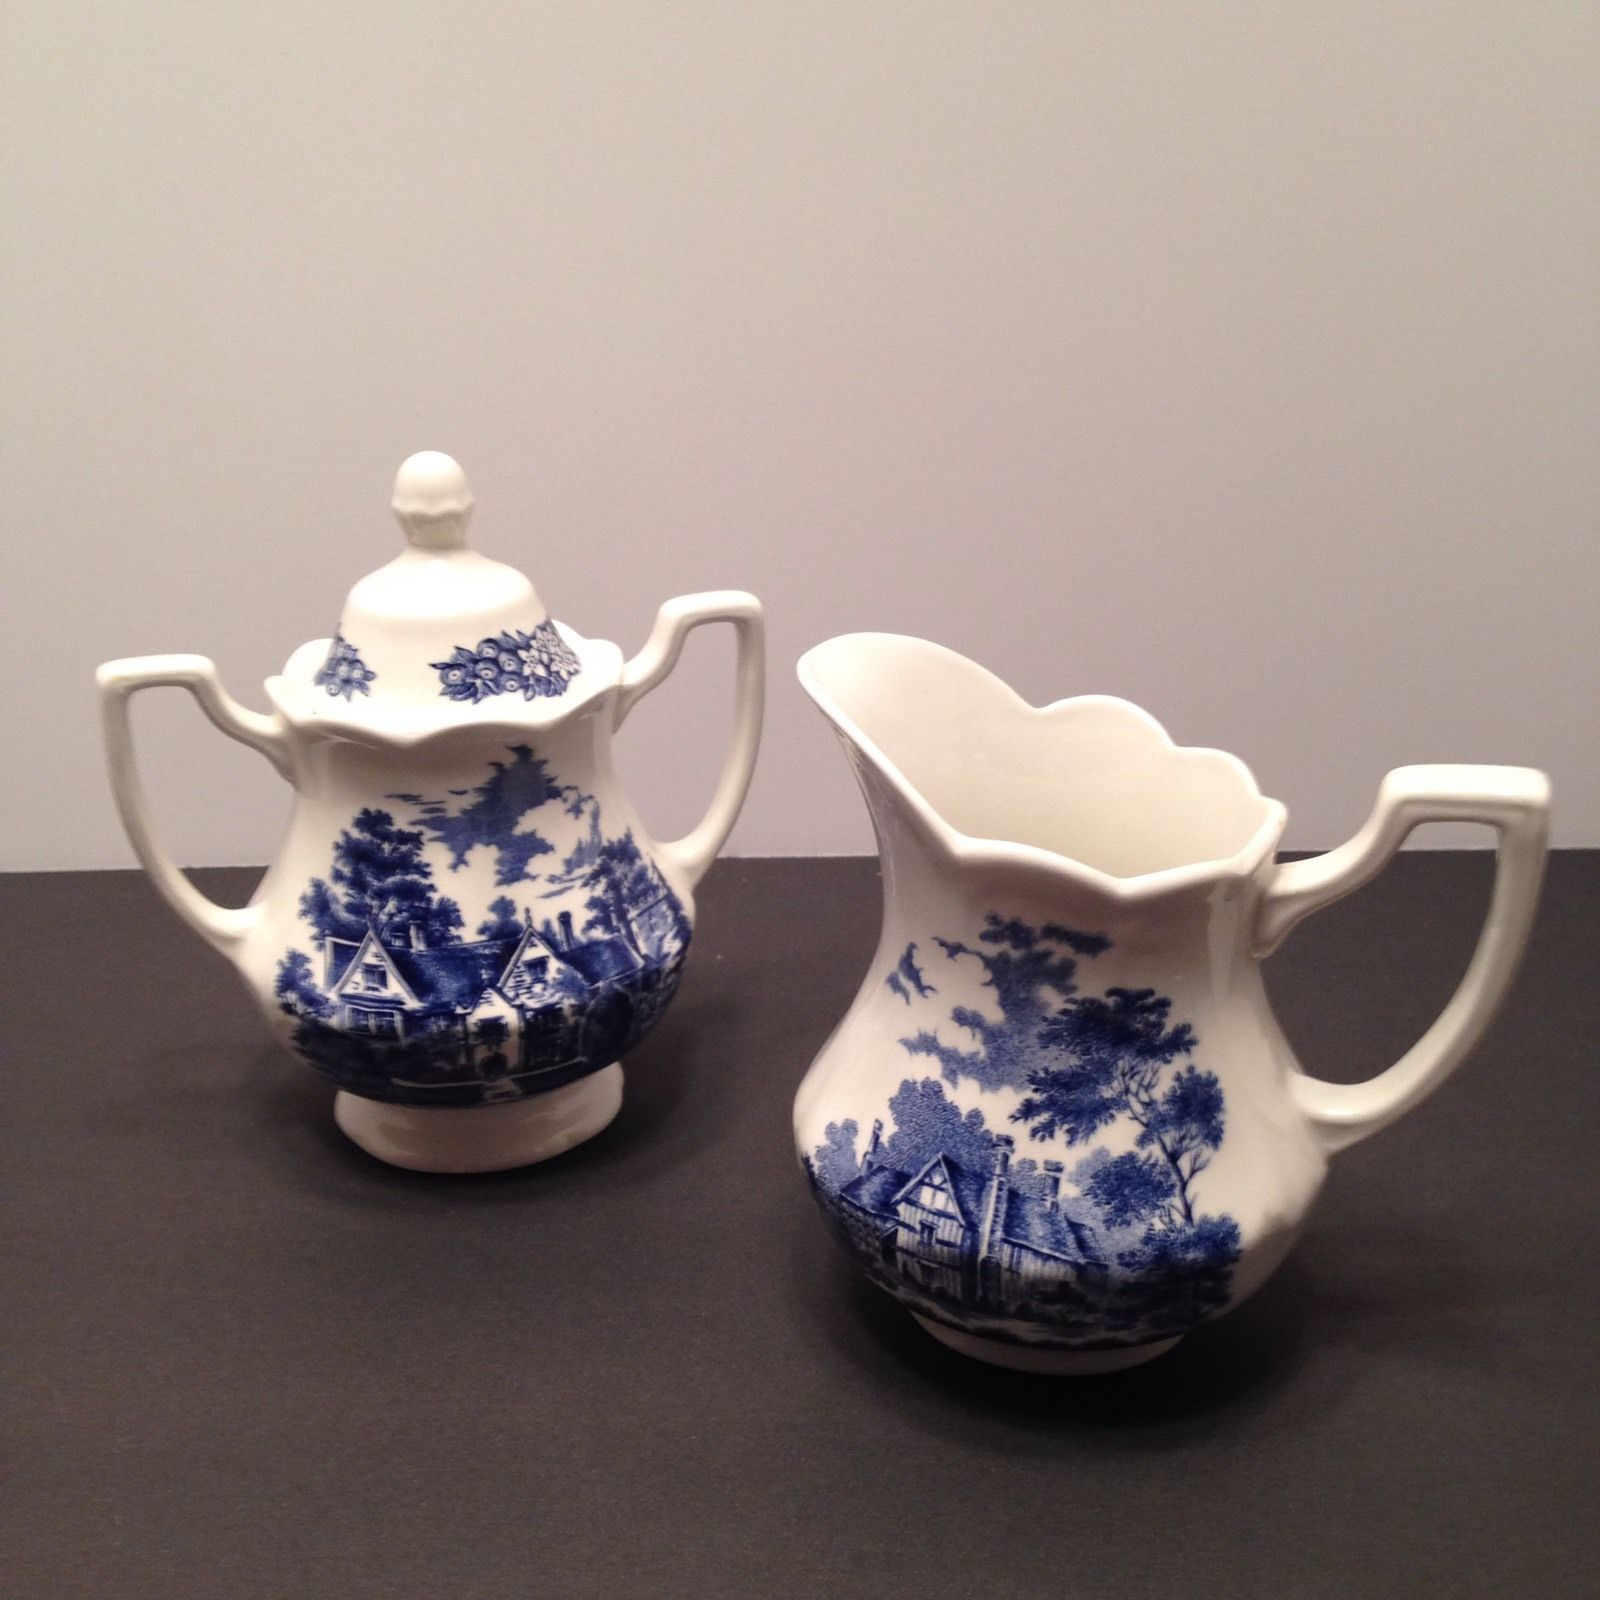 J&G Meakin Merrie England Sugar Bowl w/lid And Creamer